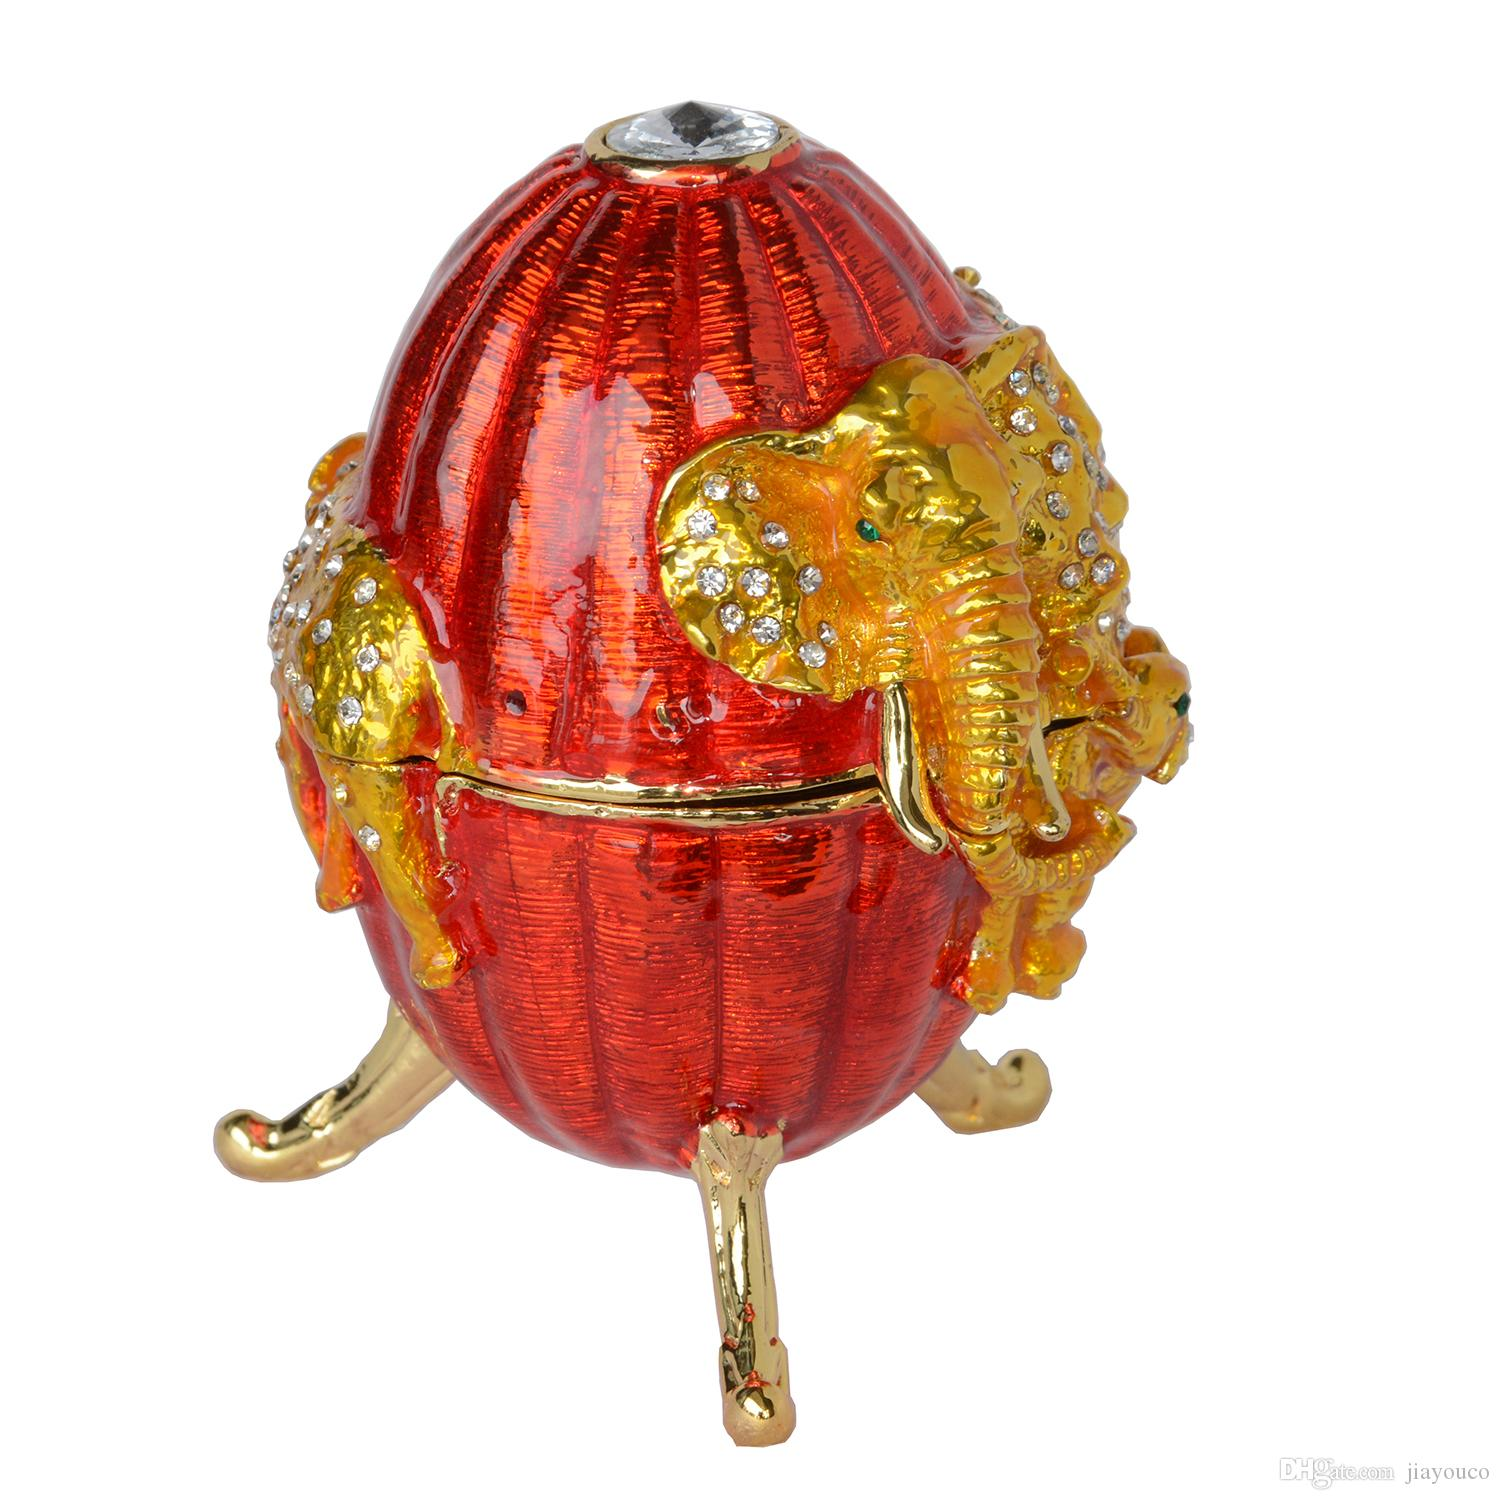 2018 russian craft faberge style elephant on easter egg bejeweled 2018 russian craft faberge style elephant on easter egg bejeweled trinket box metal jewelry box home decor sculpture christmas gifts from jiayouco negle Gallery